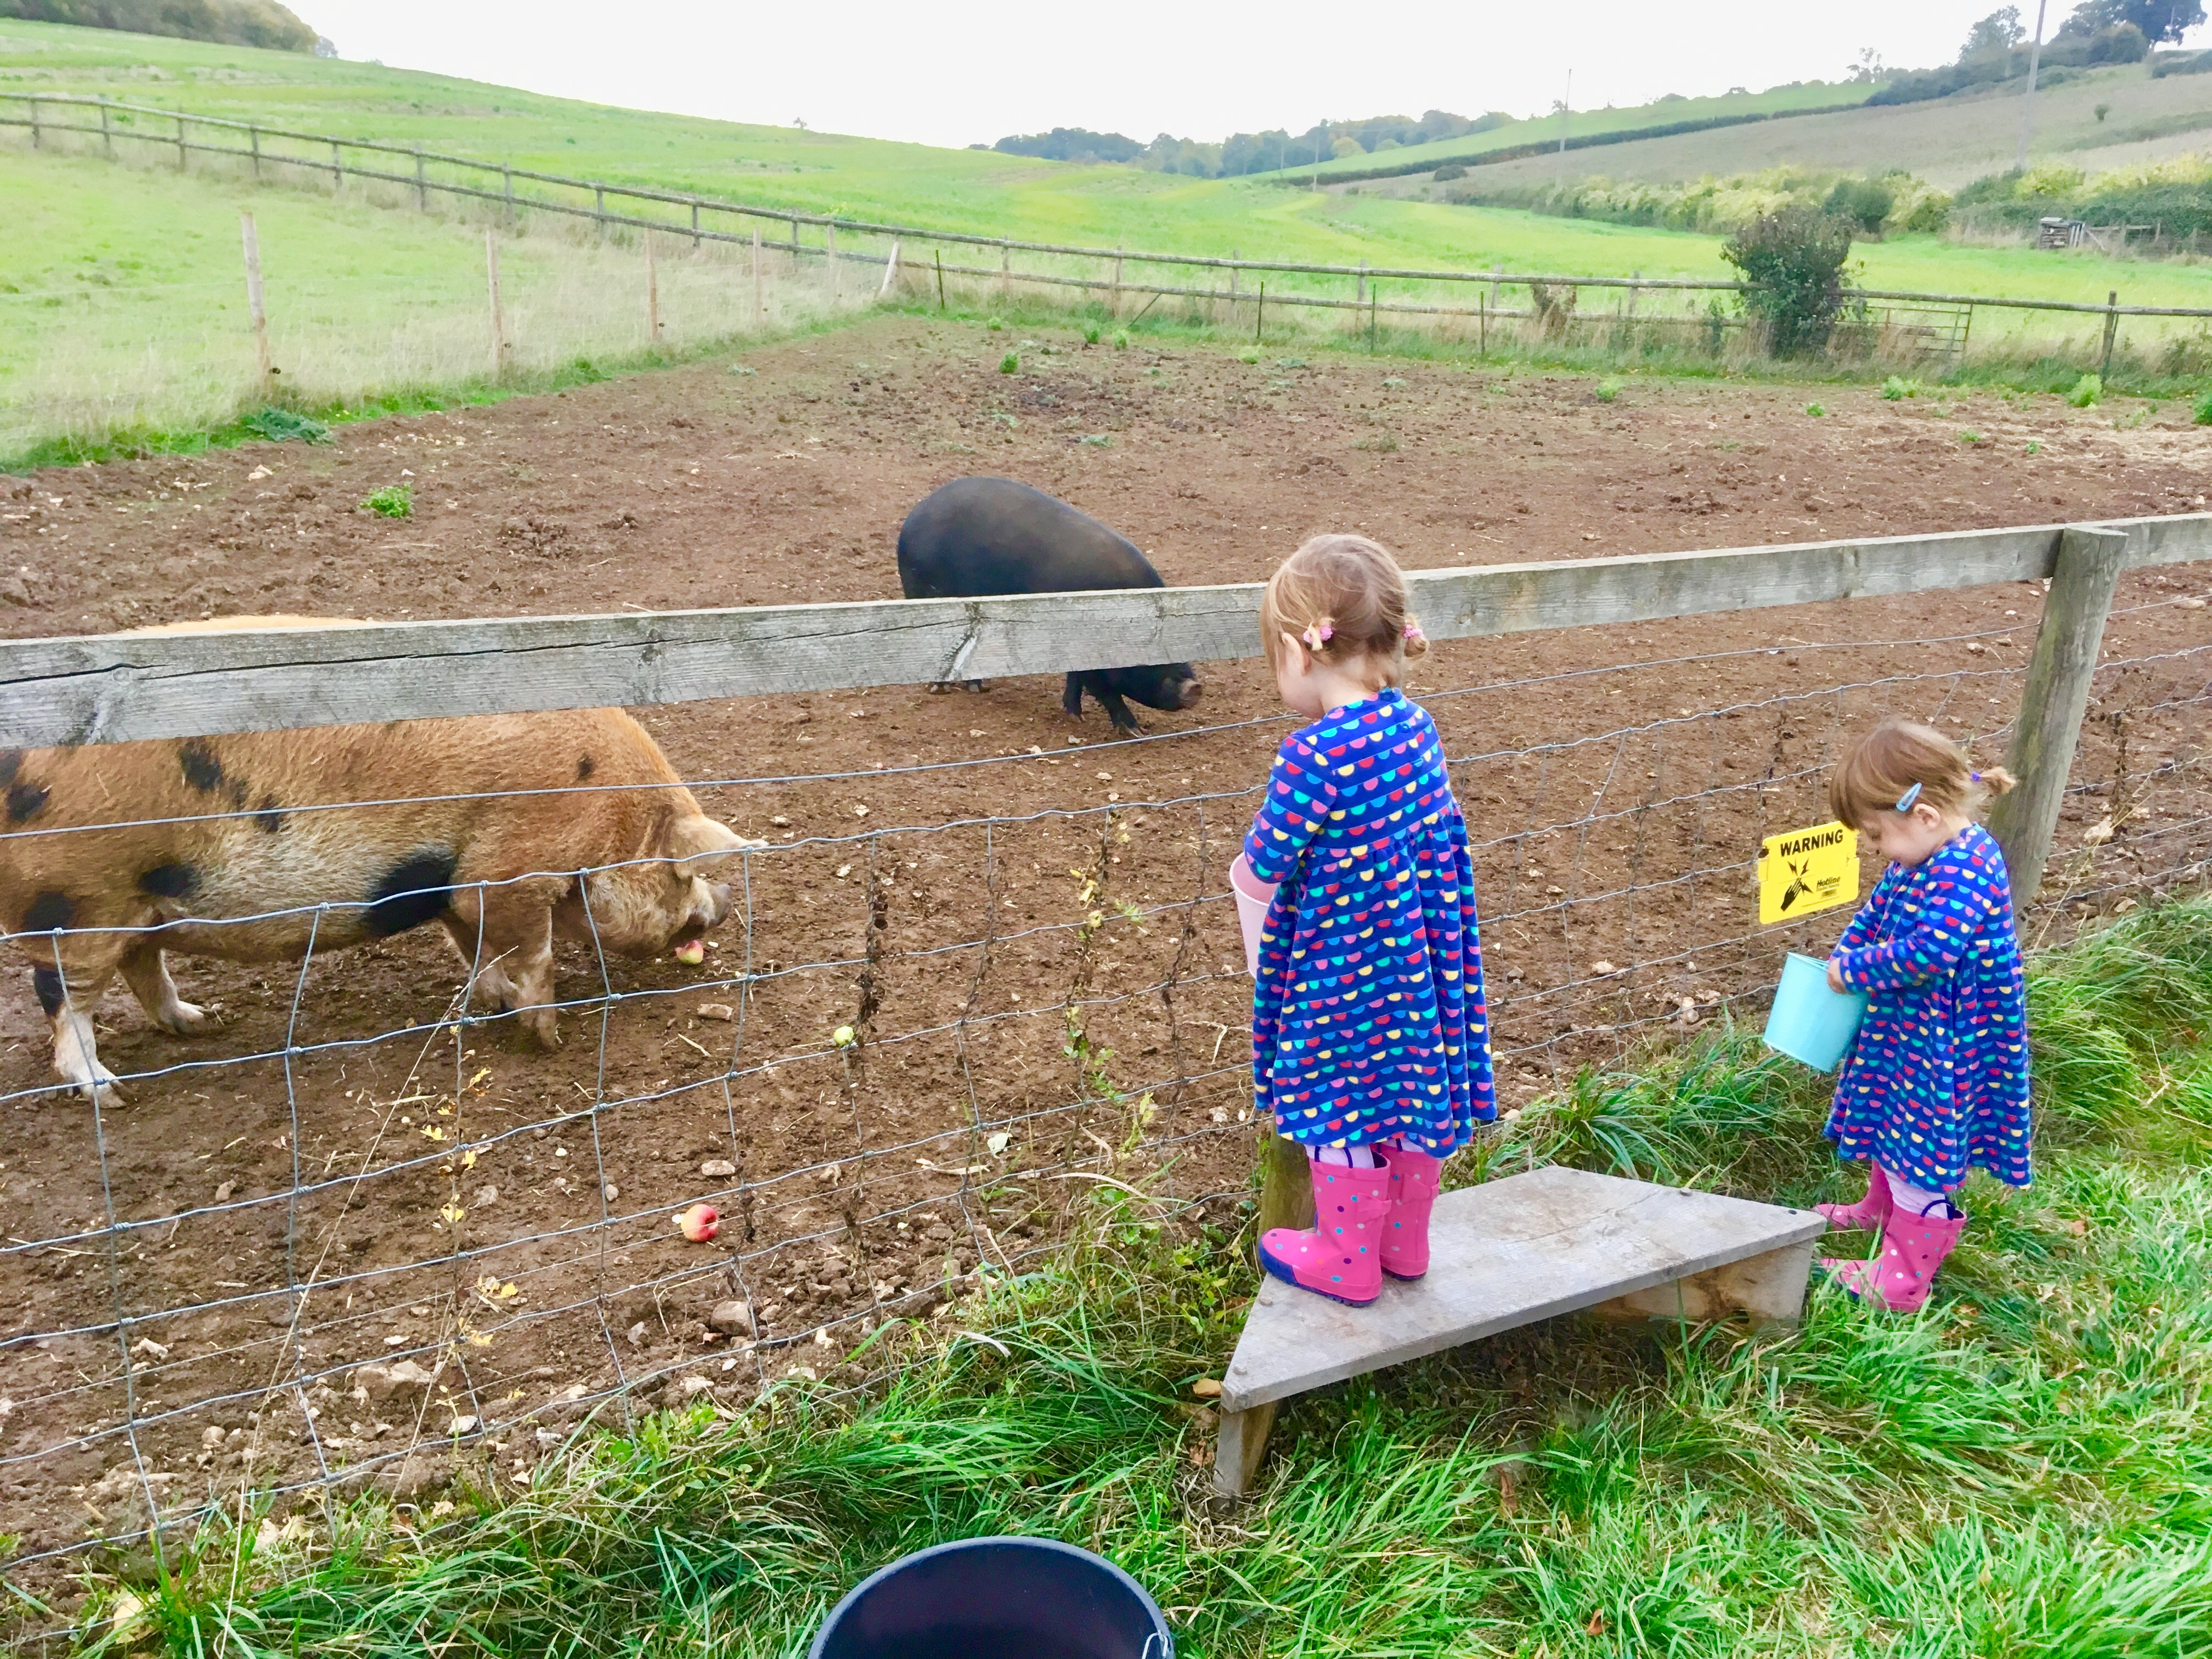 Twins feeding the pigs at Kennel farm